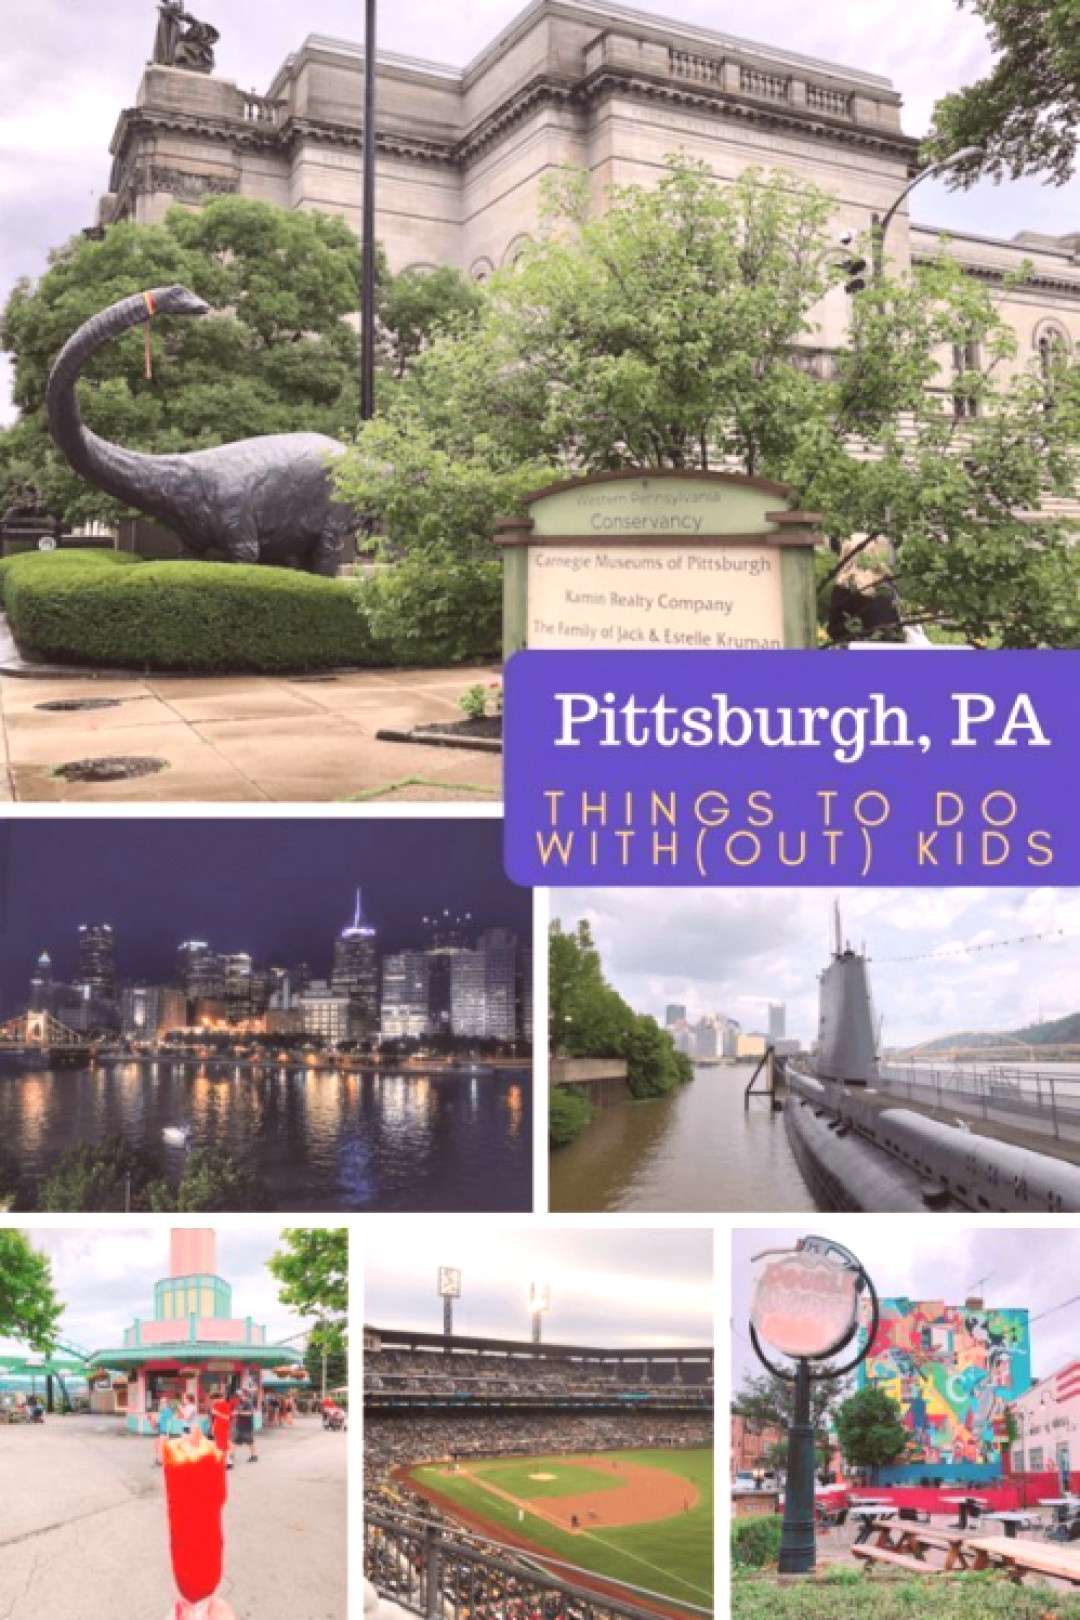 Traveling to Pittsburgh? We have a list of fun and interesting things to do in Pittsburgh both with